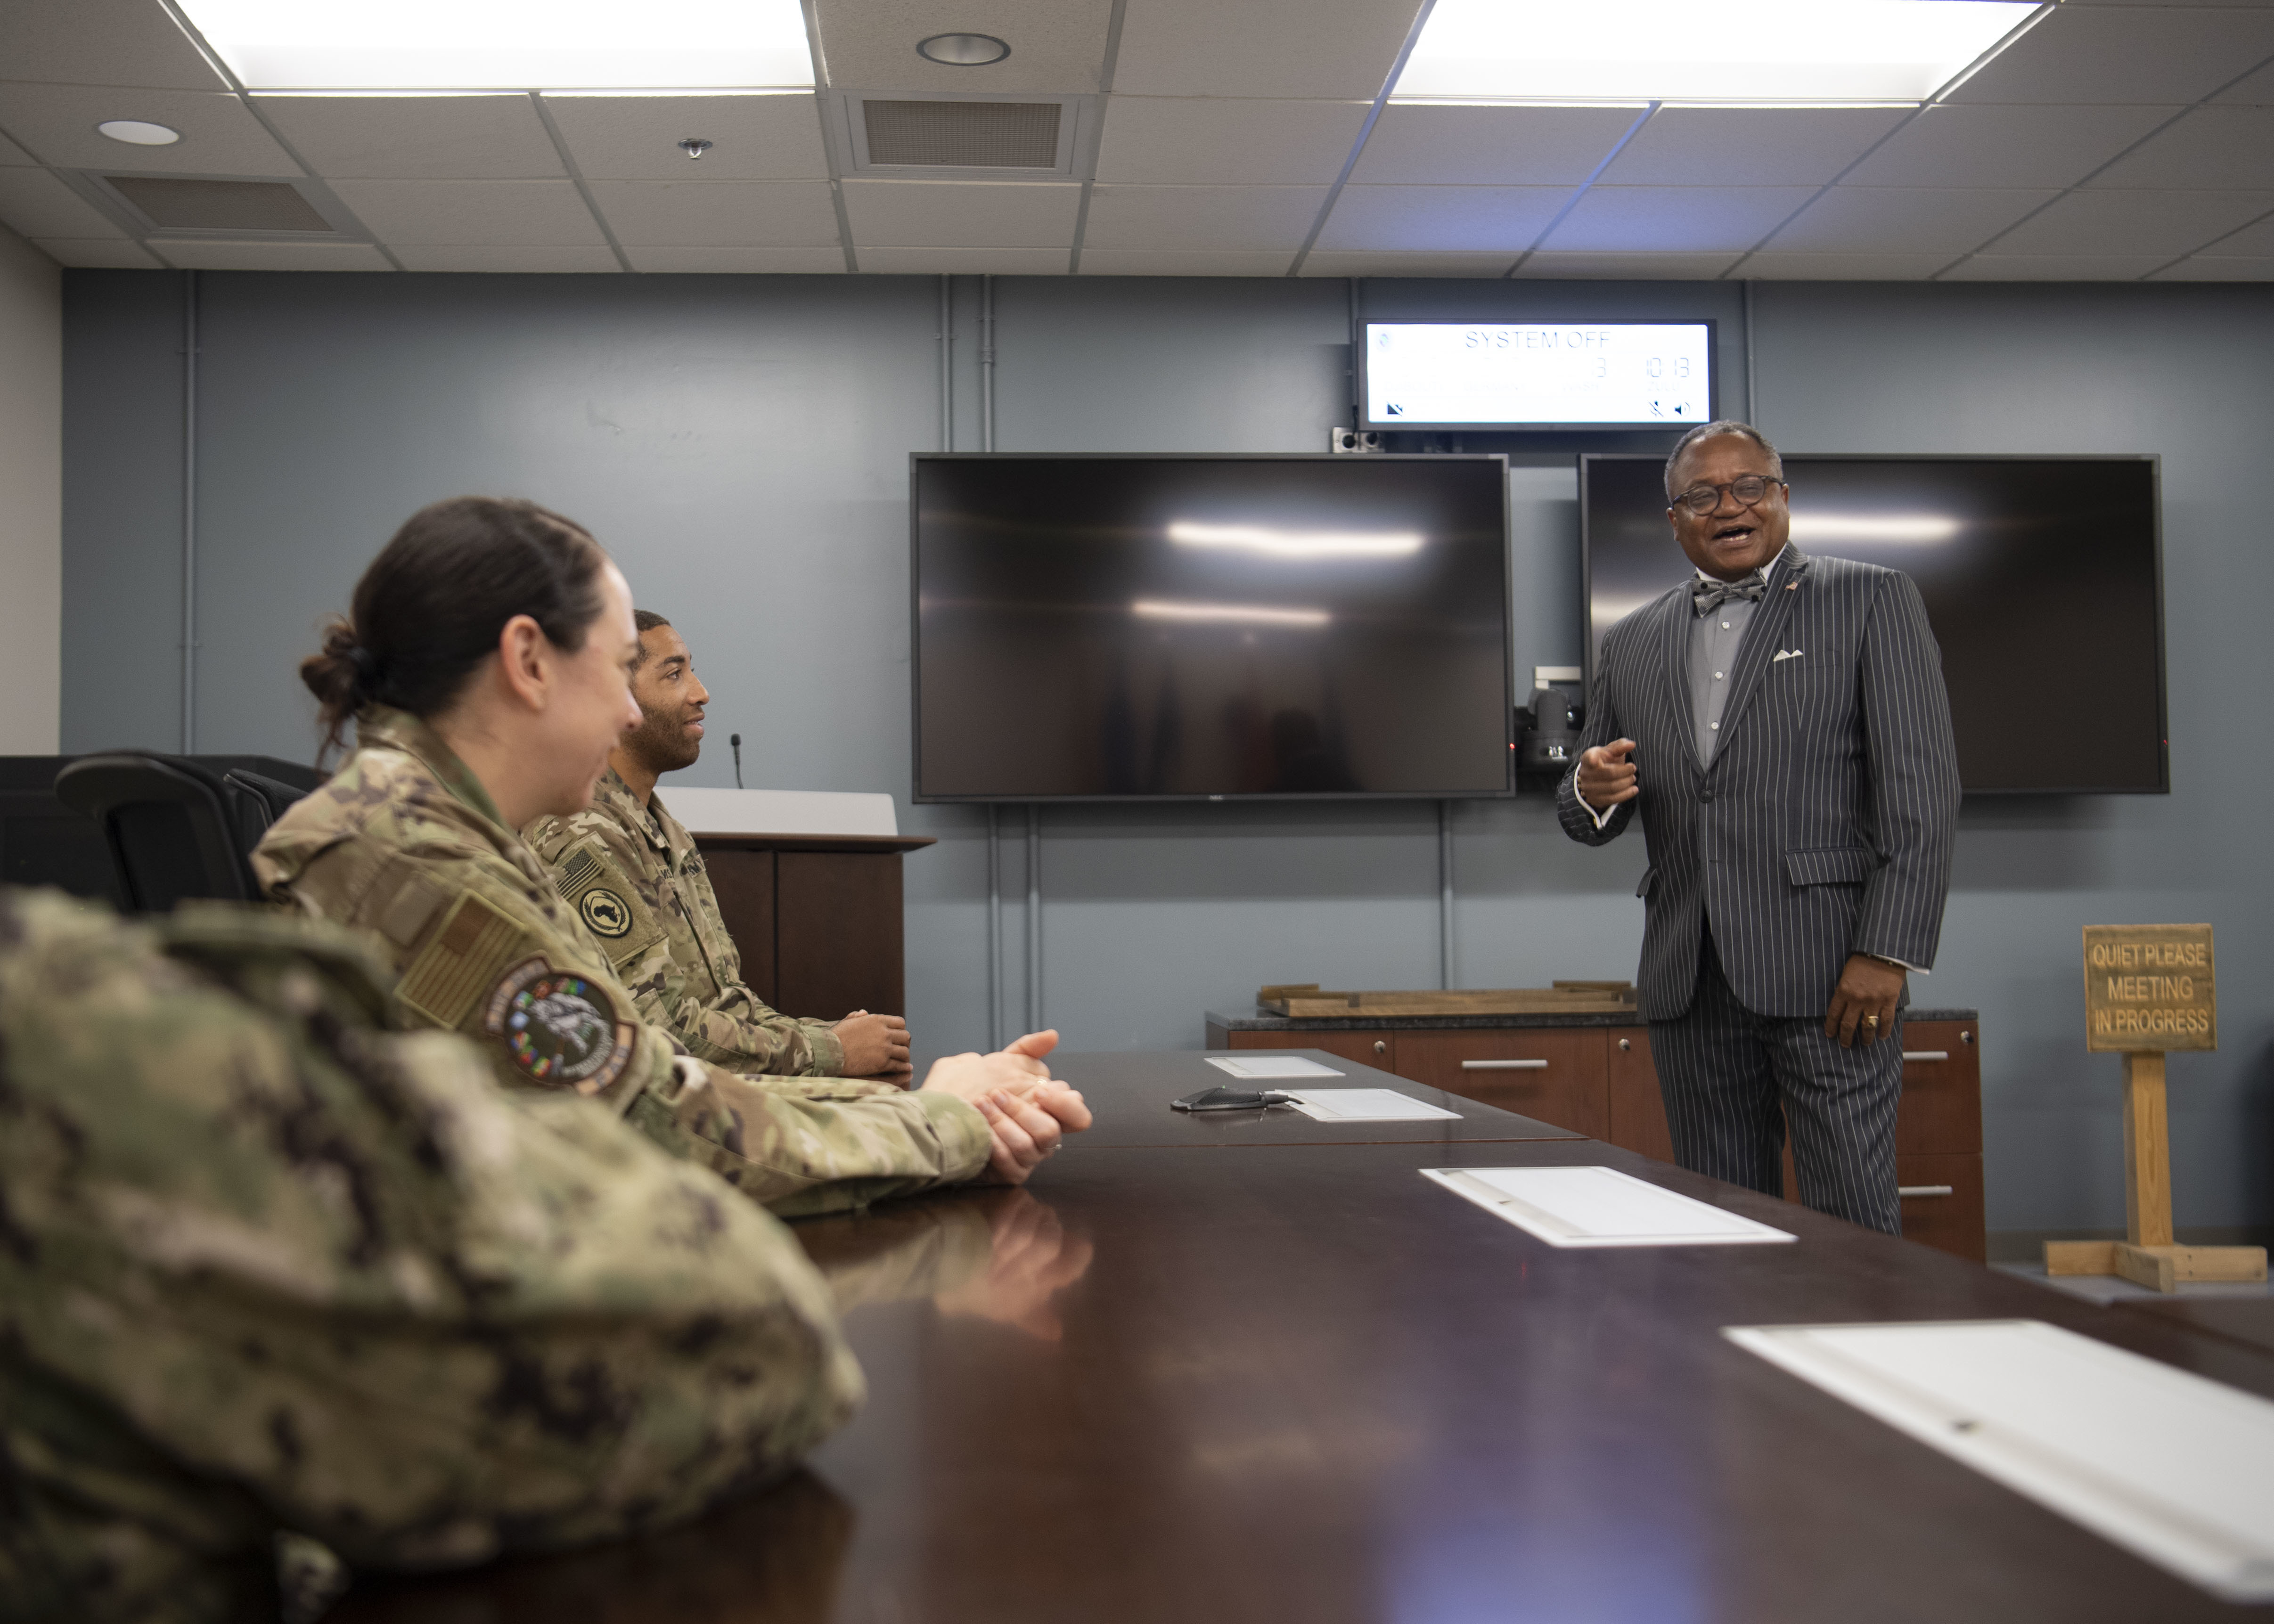 Irvin Hicks Jr., foreign policy advisor (POLAD) for Combined Joint Task Force-Horn of Africa (CJTF-HOA), briefs CJTF-HOA service members at Camp Lemonnier, Djibouti, June 27, 2019. Hicks briefed about his duties as the POLAD and how he contributes to the CJTF-HOA mission. (U.S. Air Force photo by Staff Sgt. J.D. Strong II)